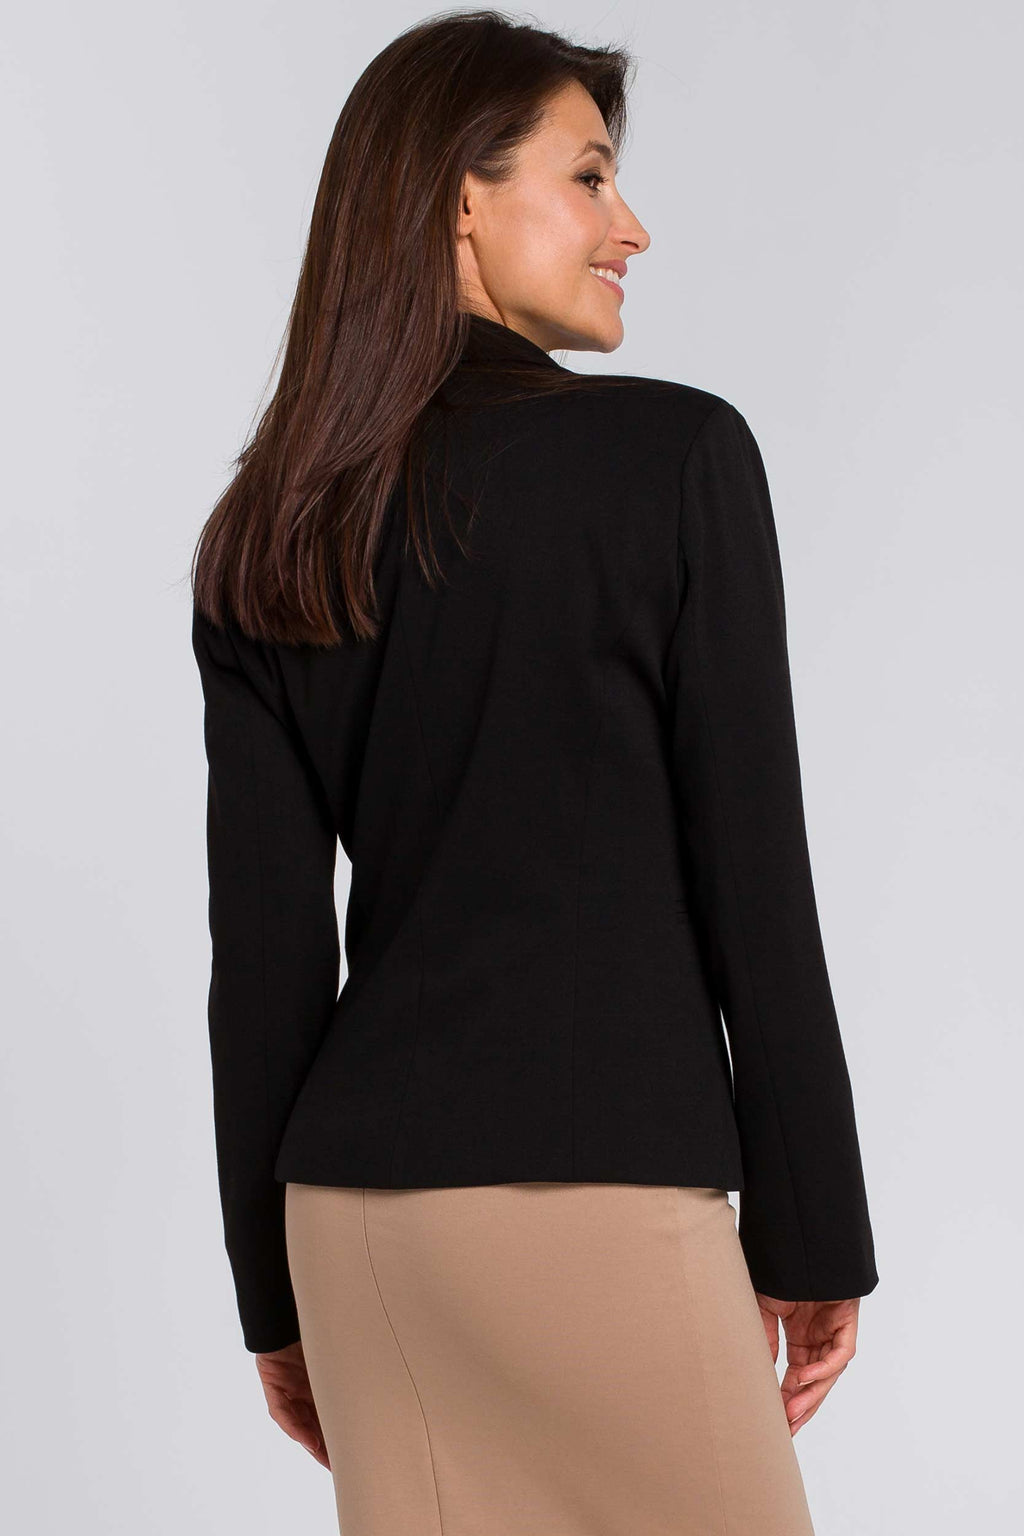 Black Cotton Blazer With Dotted Lining - So Chic Boutique